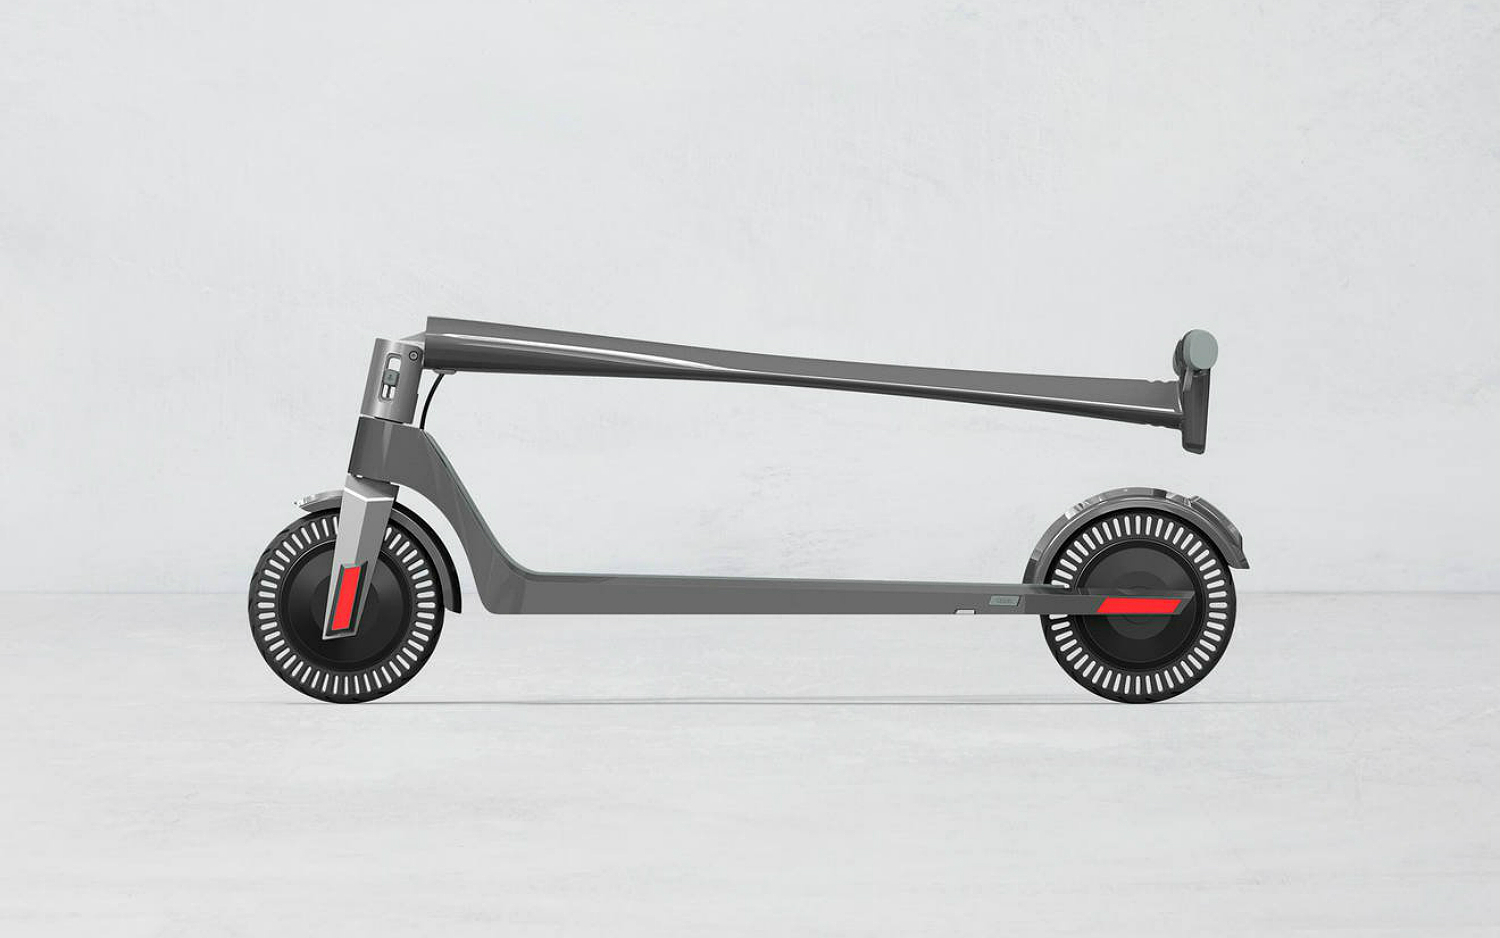 The Model One Electric Scooter